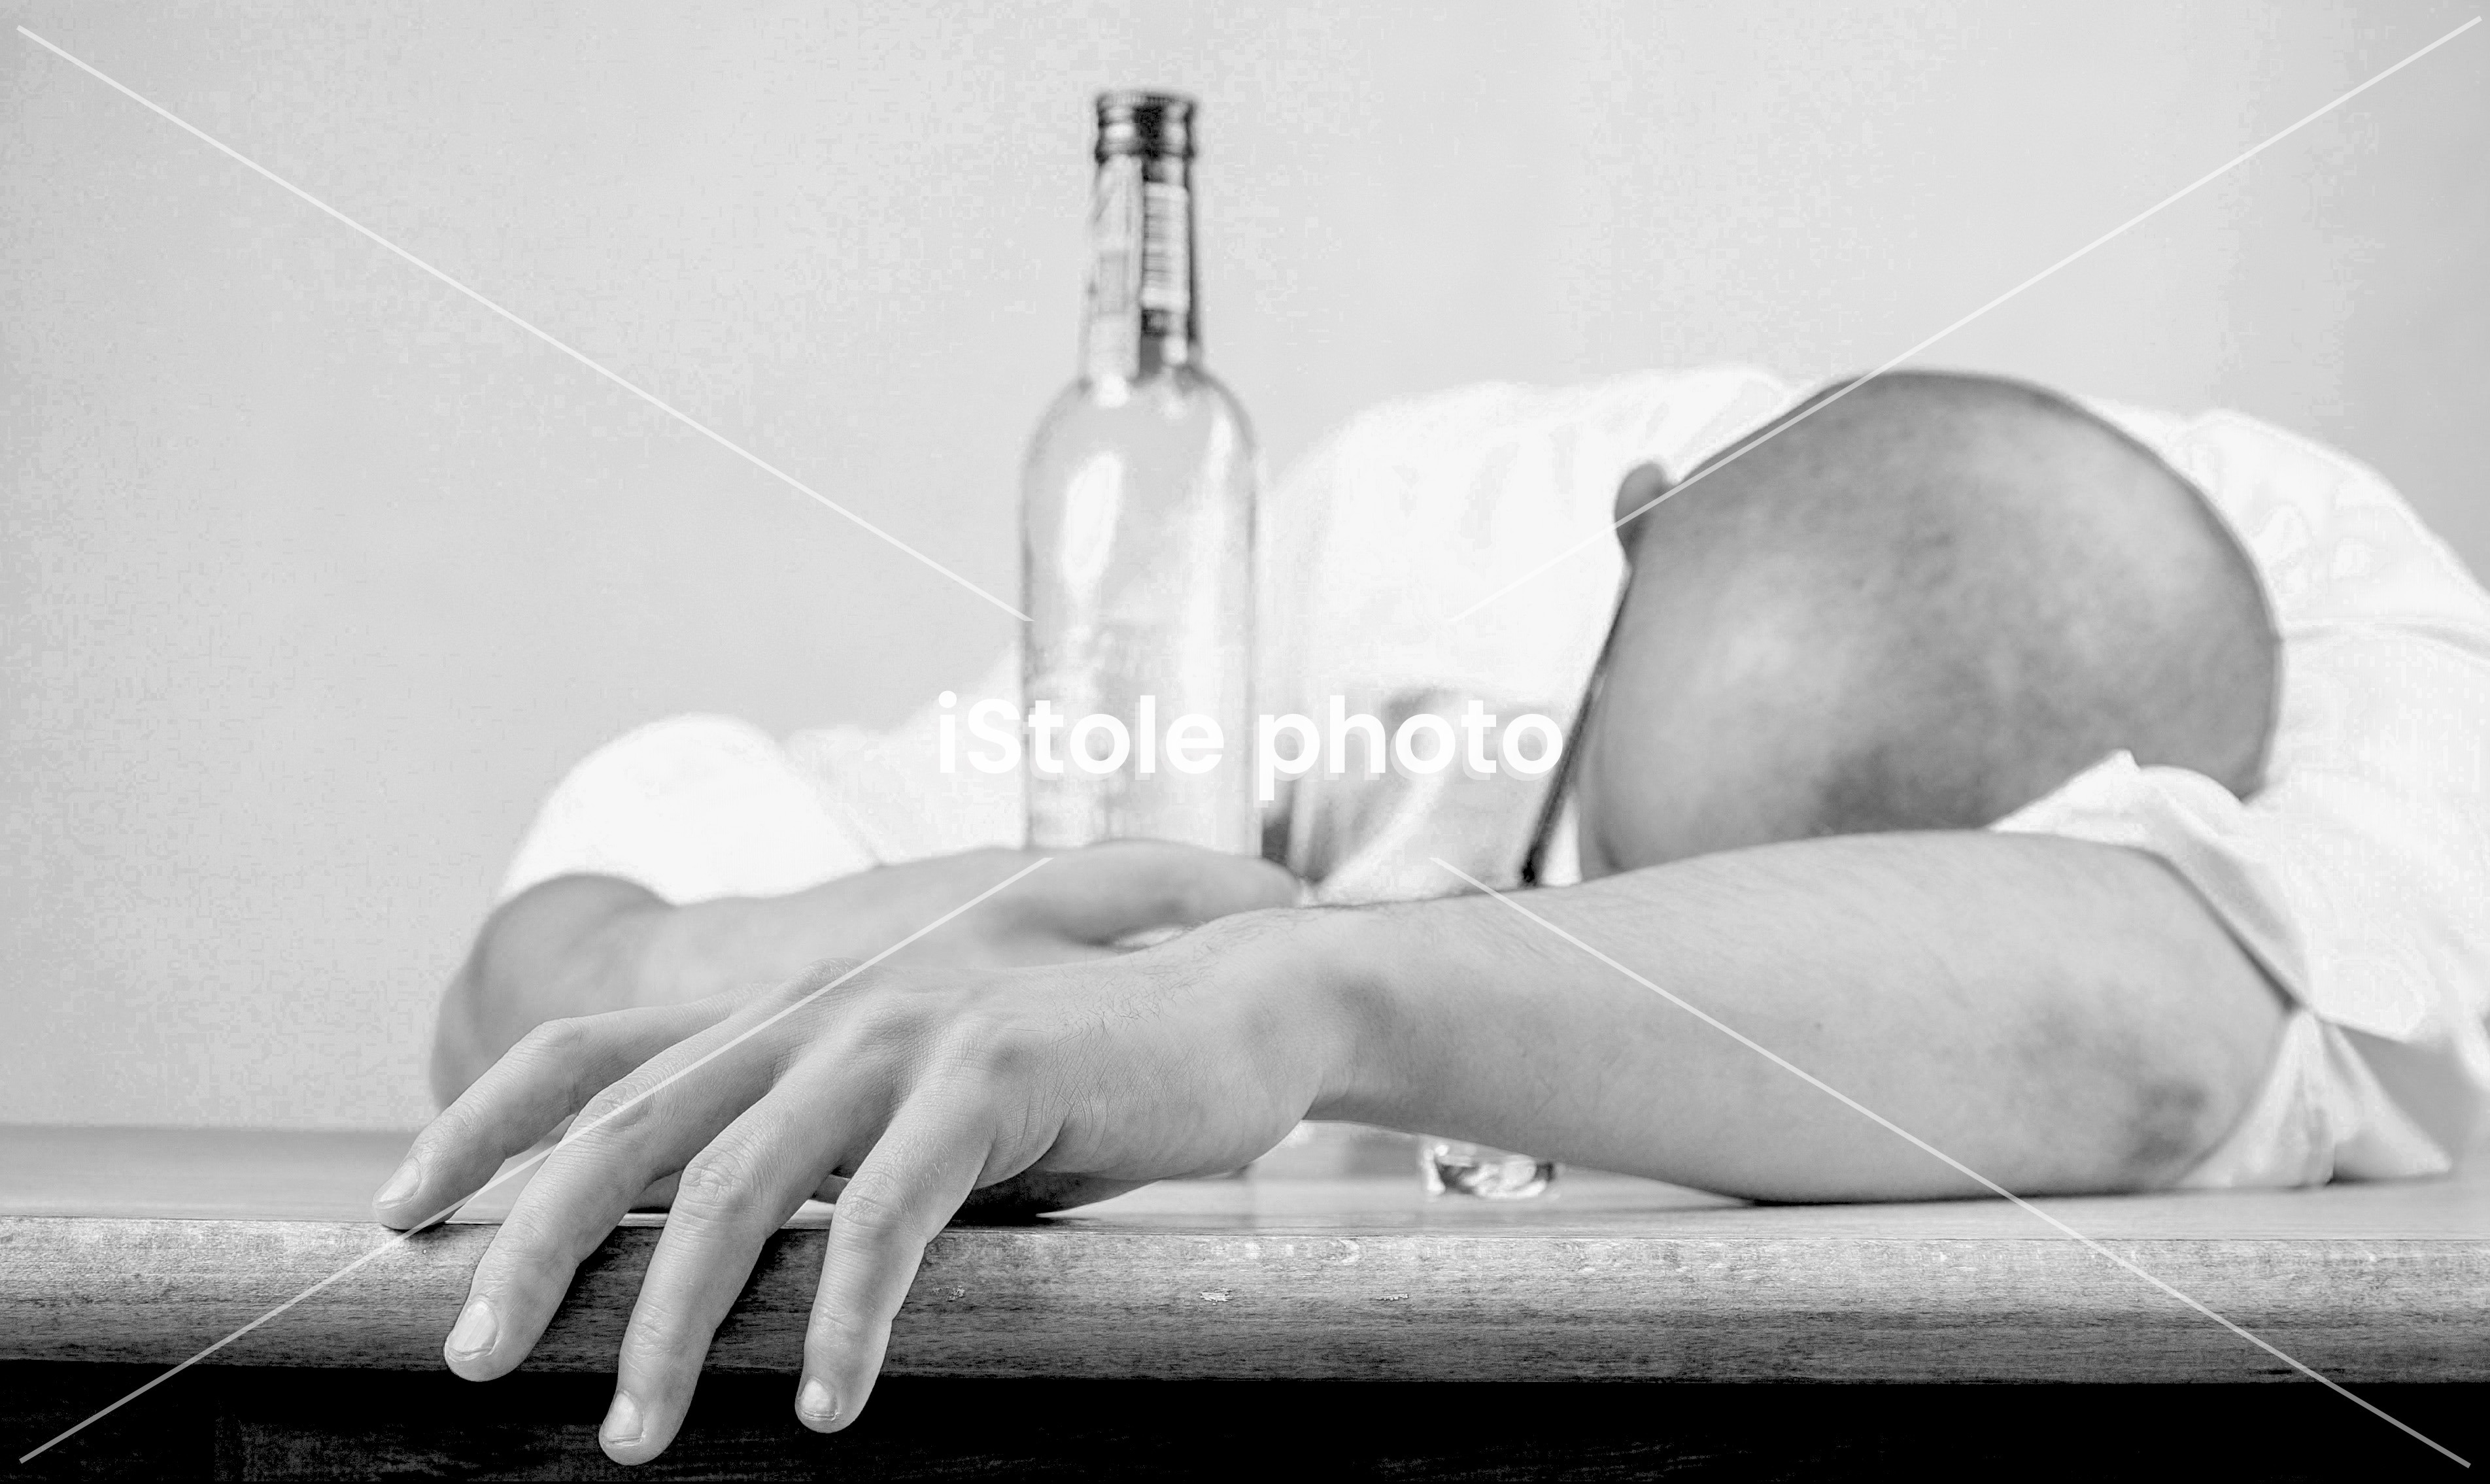 Polish man drunk vodka stockphoto